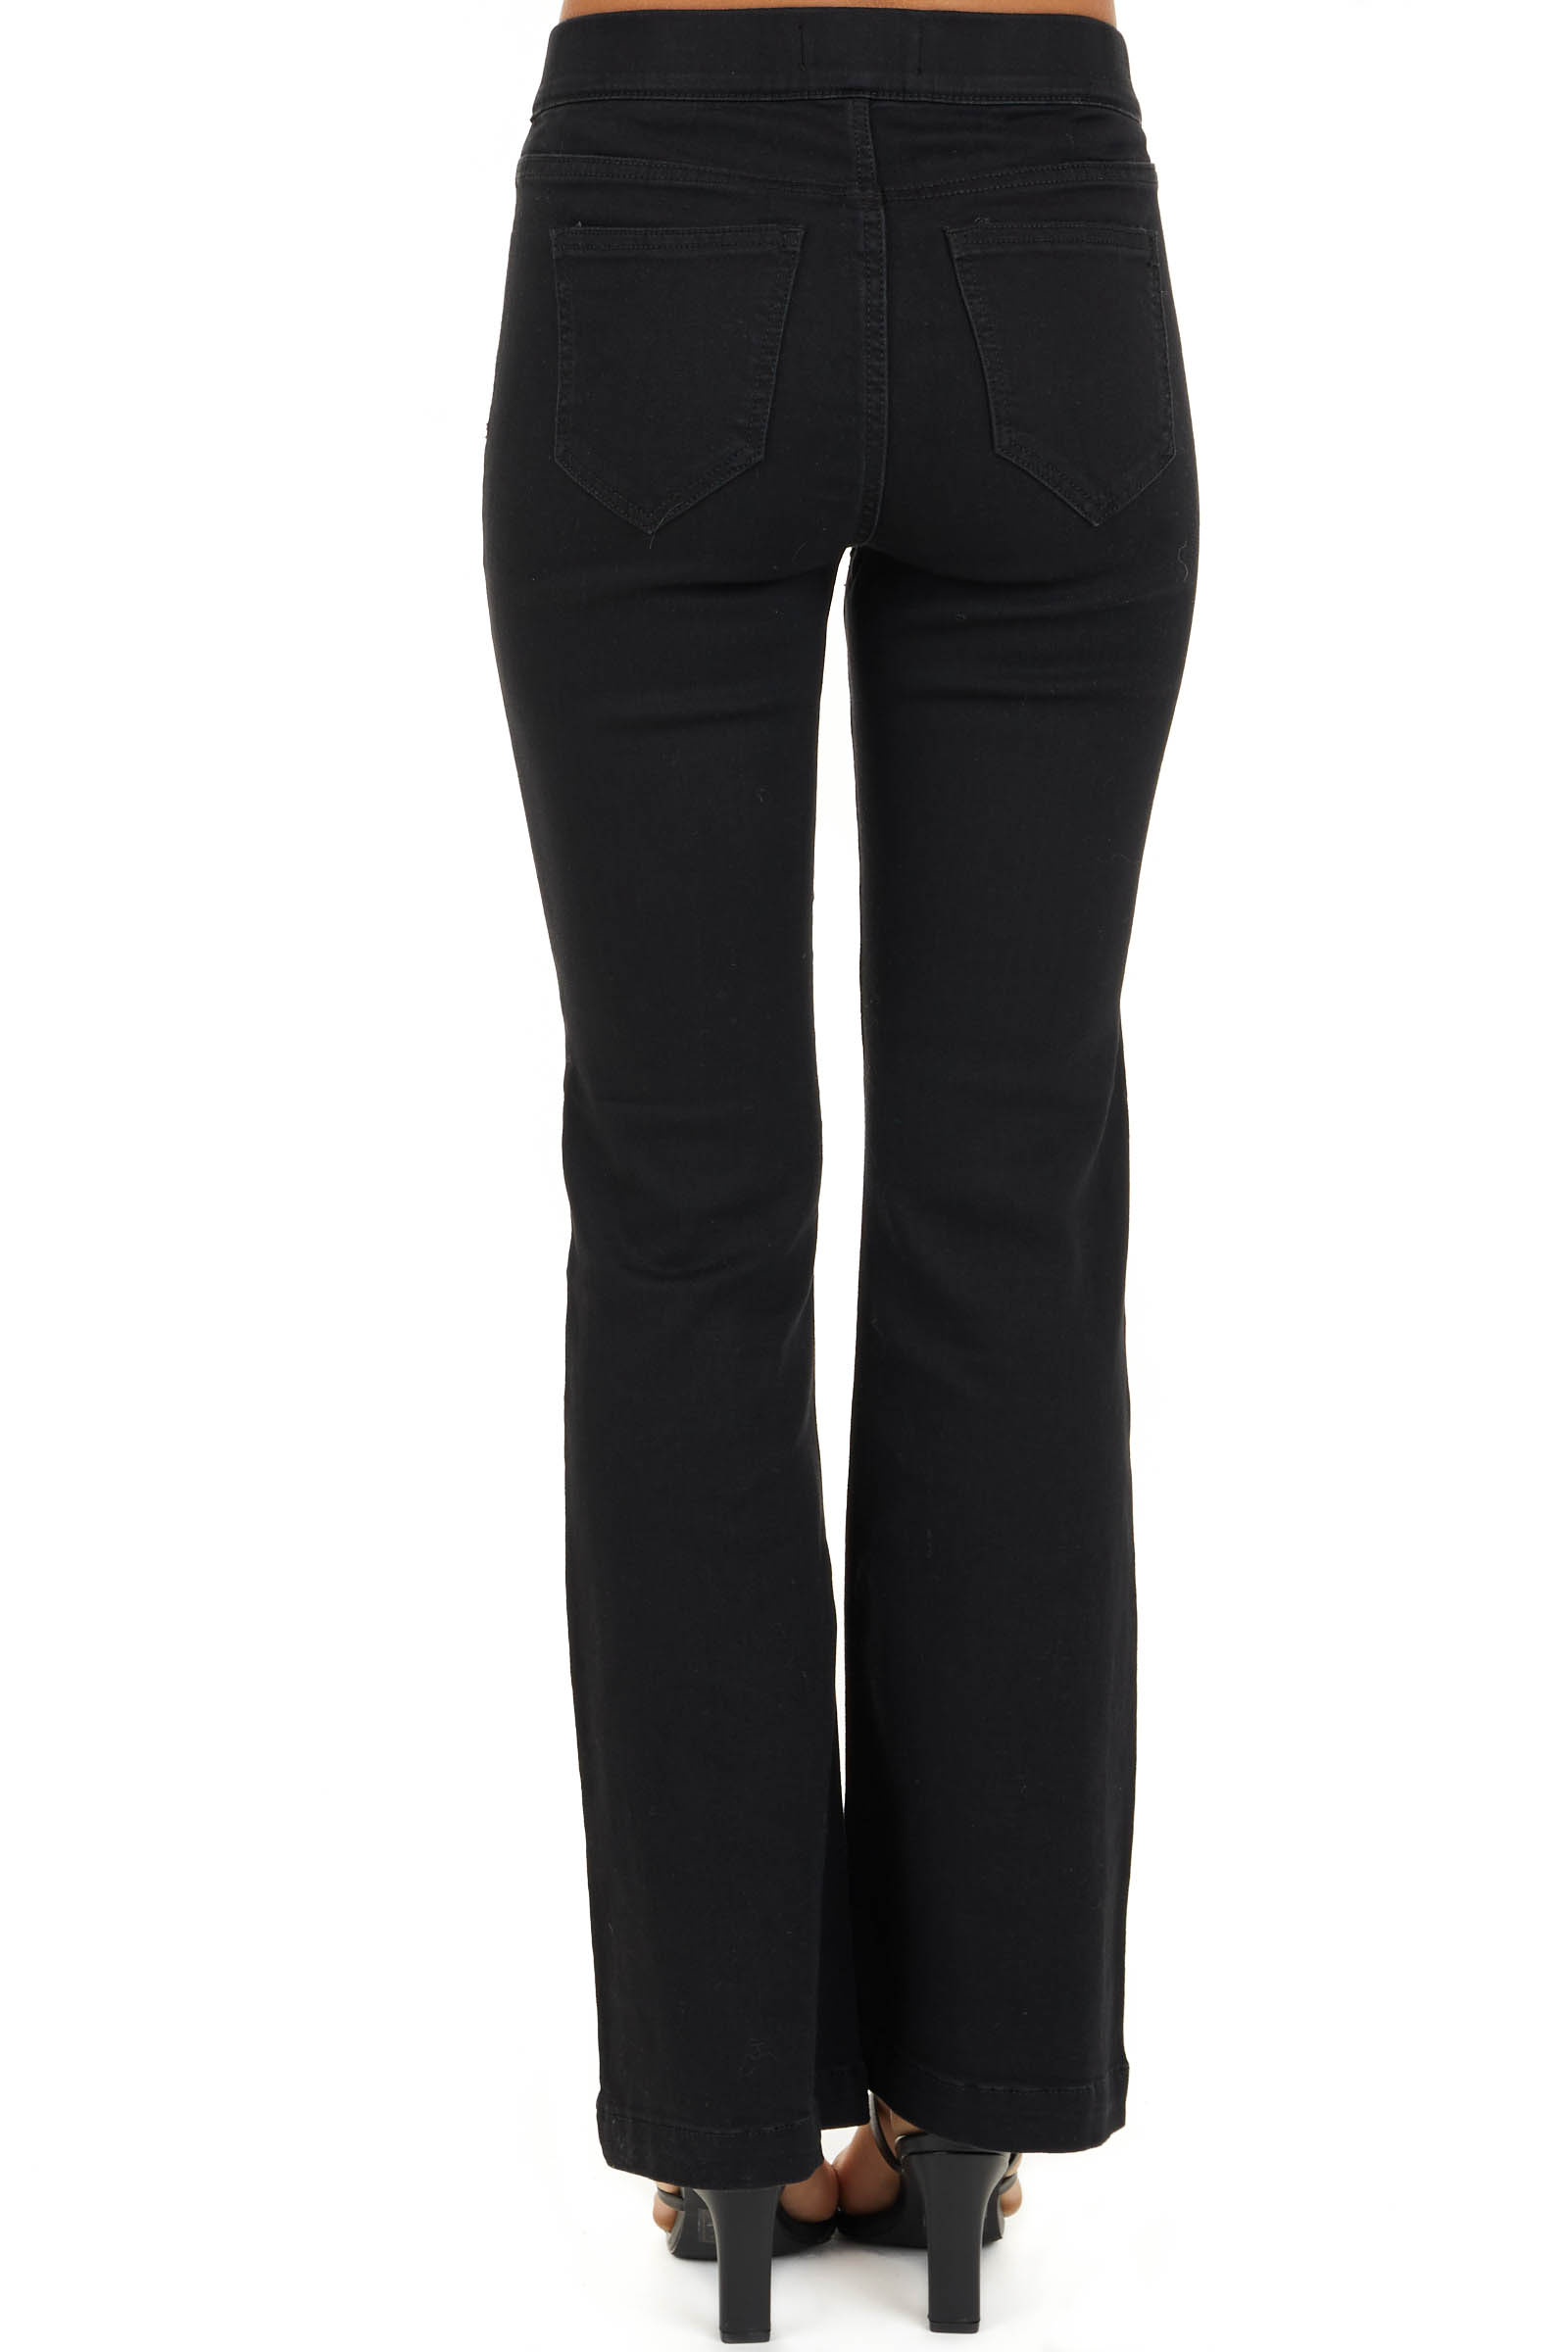 Black Solid Denim Flare Jeggings with Elastic Waistband back view